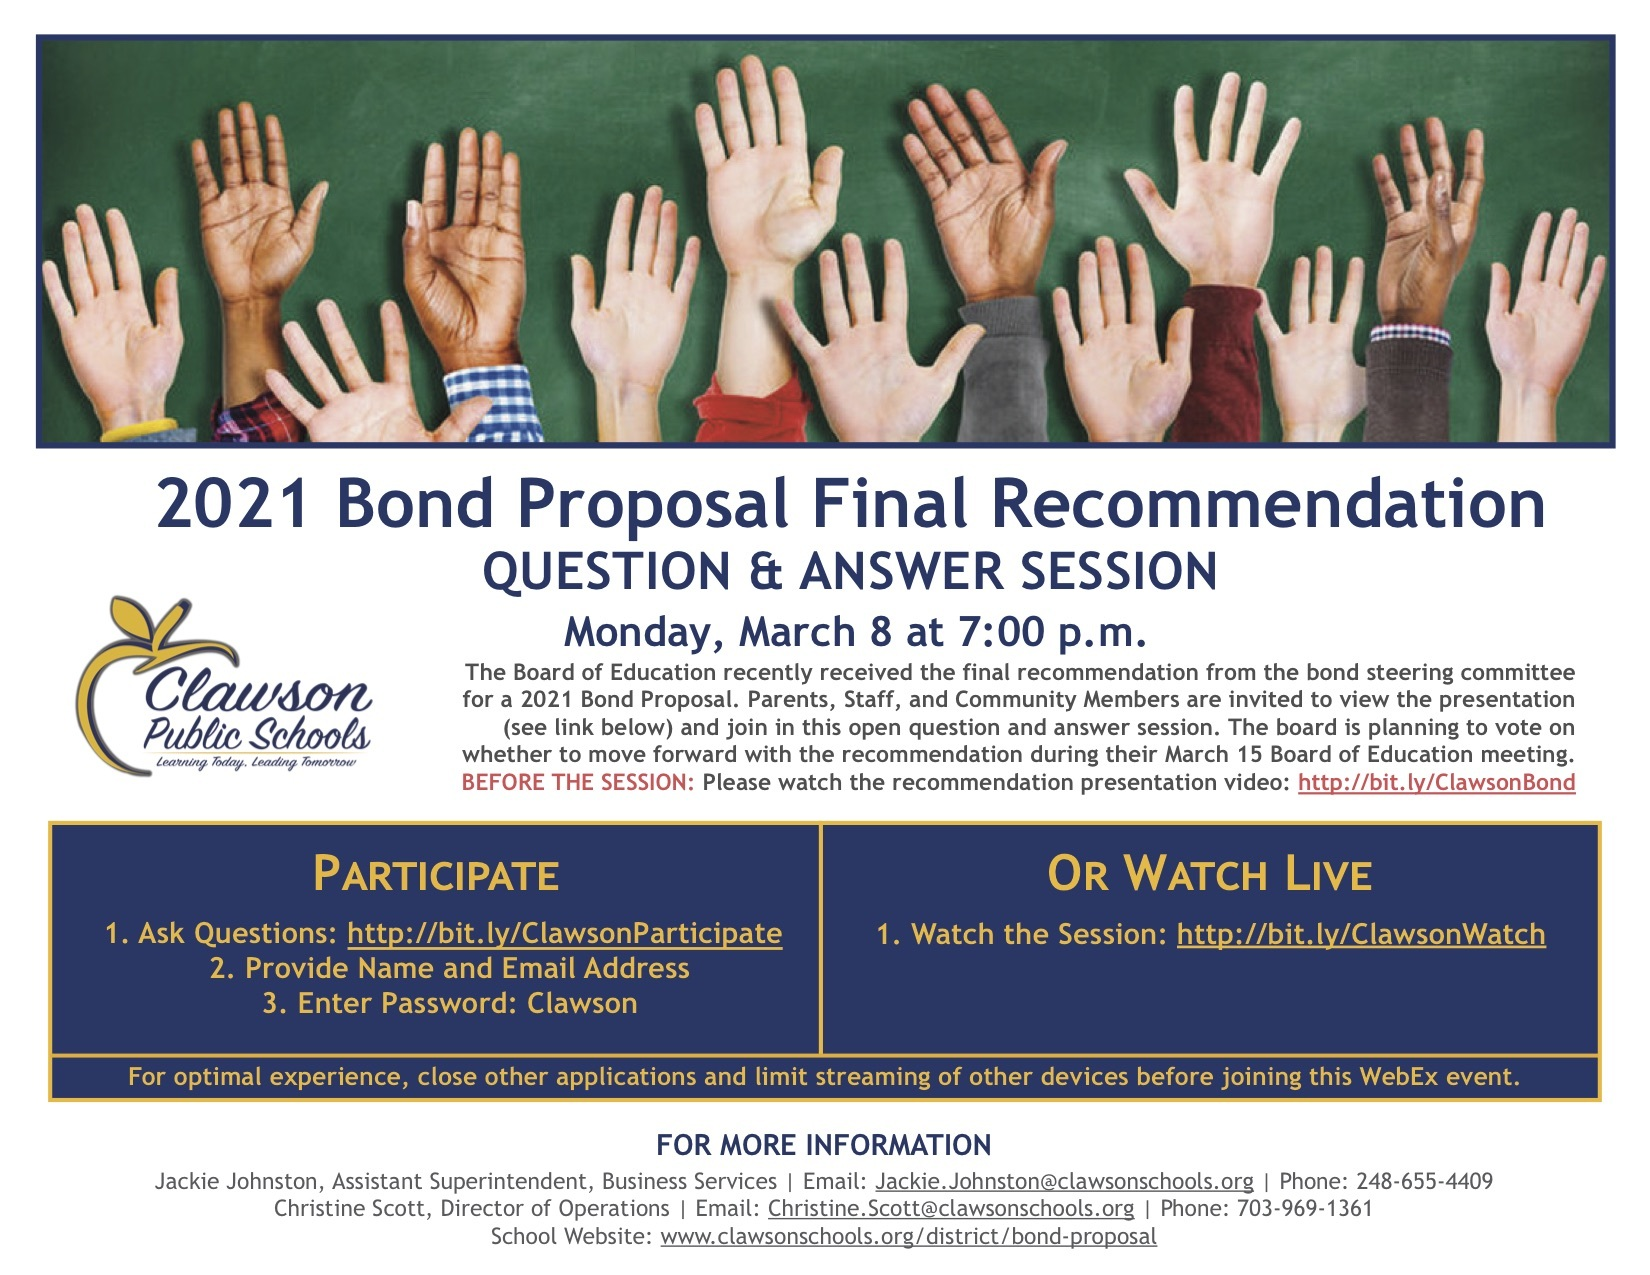 2021 Bond Proposal Final Recommendation Question & Answer Session. Monday, March 8 at 7:00 p.m.